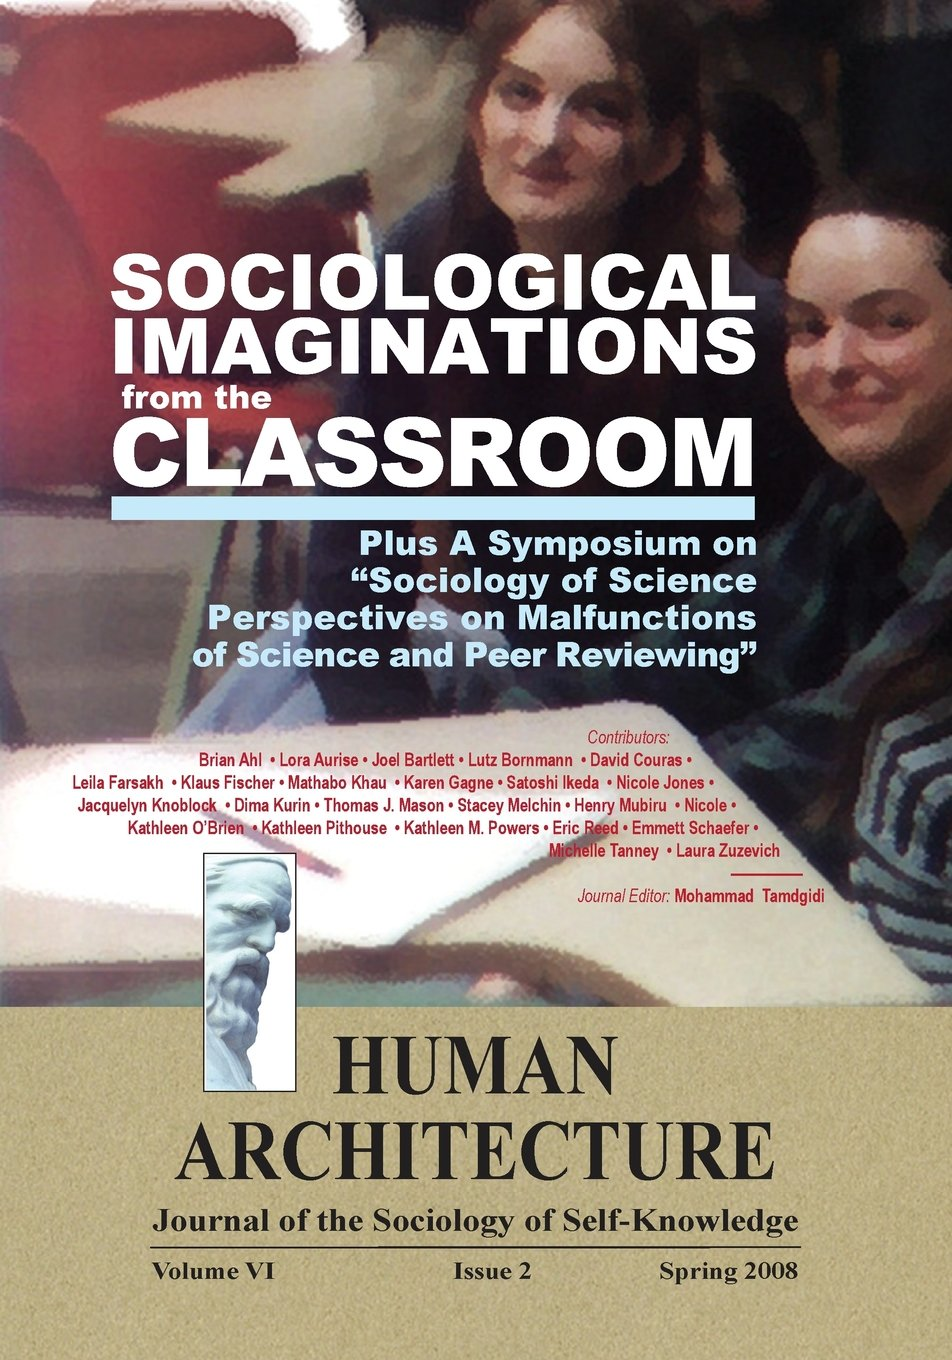 Sociological Imaginations from the Classroom--Plus A Symposium on the Sociology of Science Perspectives on the Malfunctions of Science and Peer Reviewing ePub fb2 book